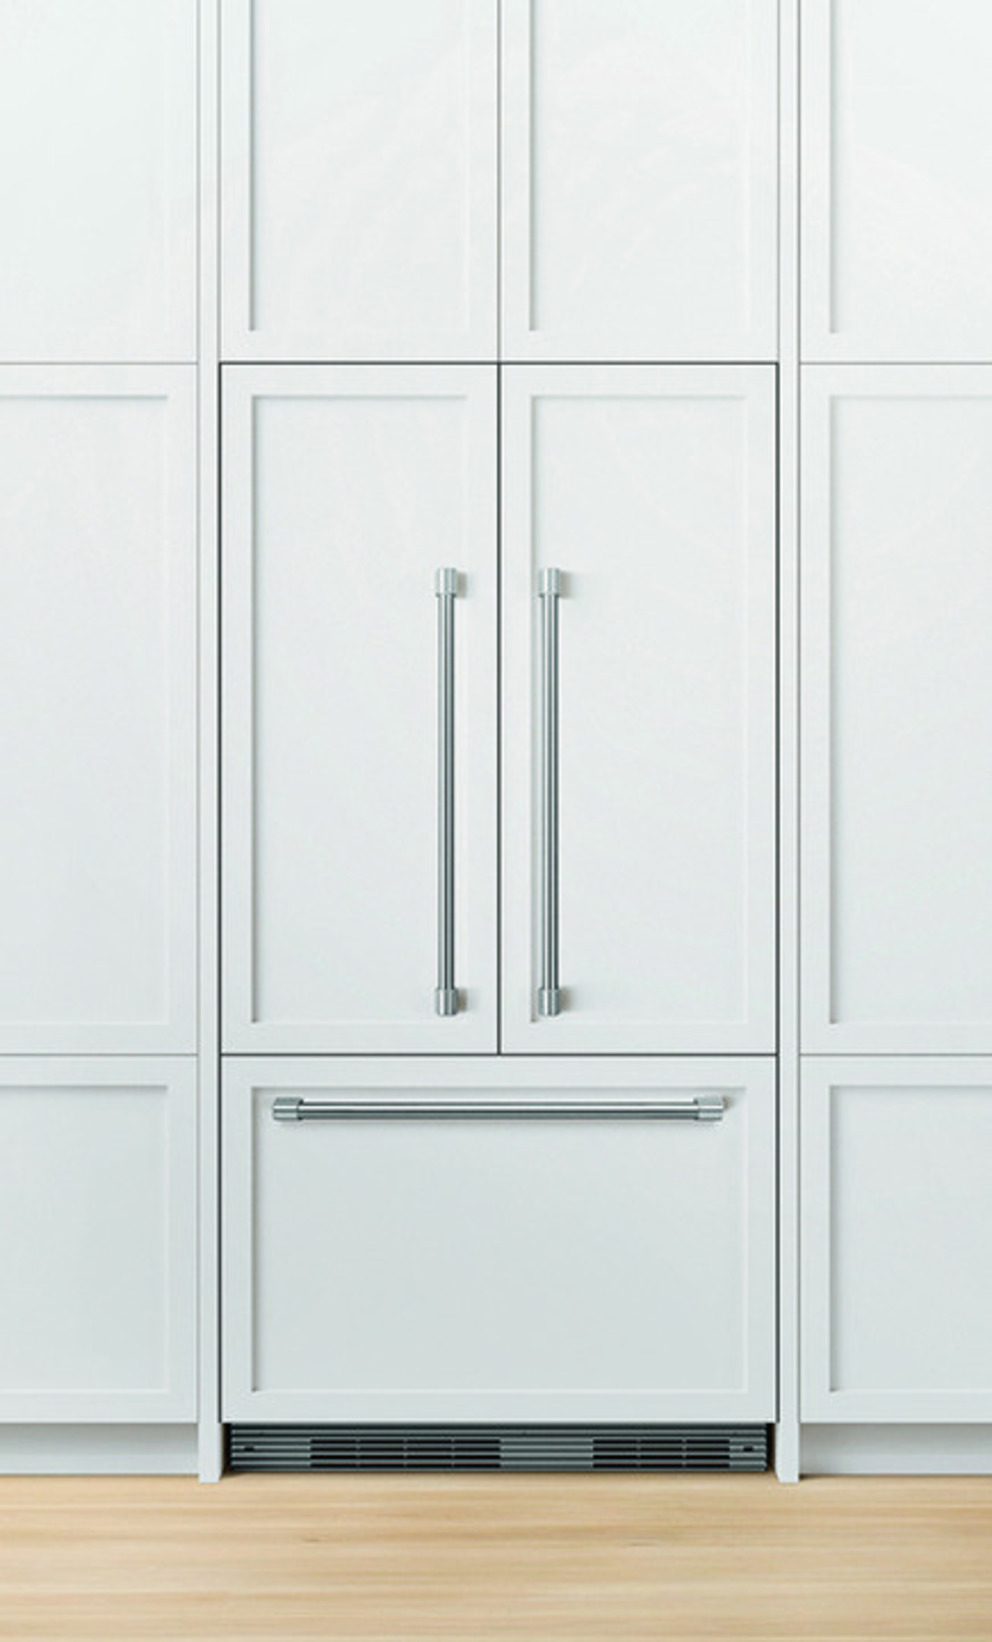 Fridges DCS RS36A72JC1 (72'' DCS)